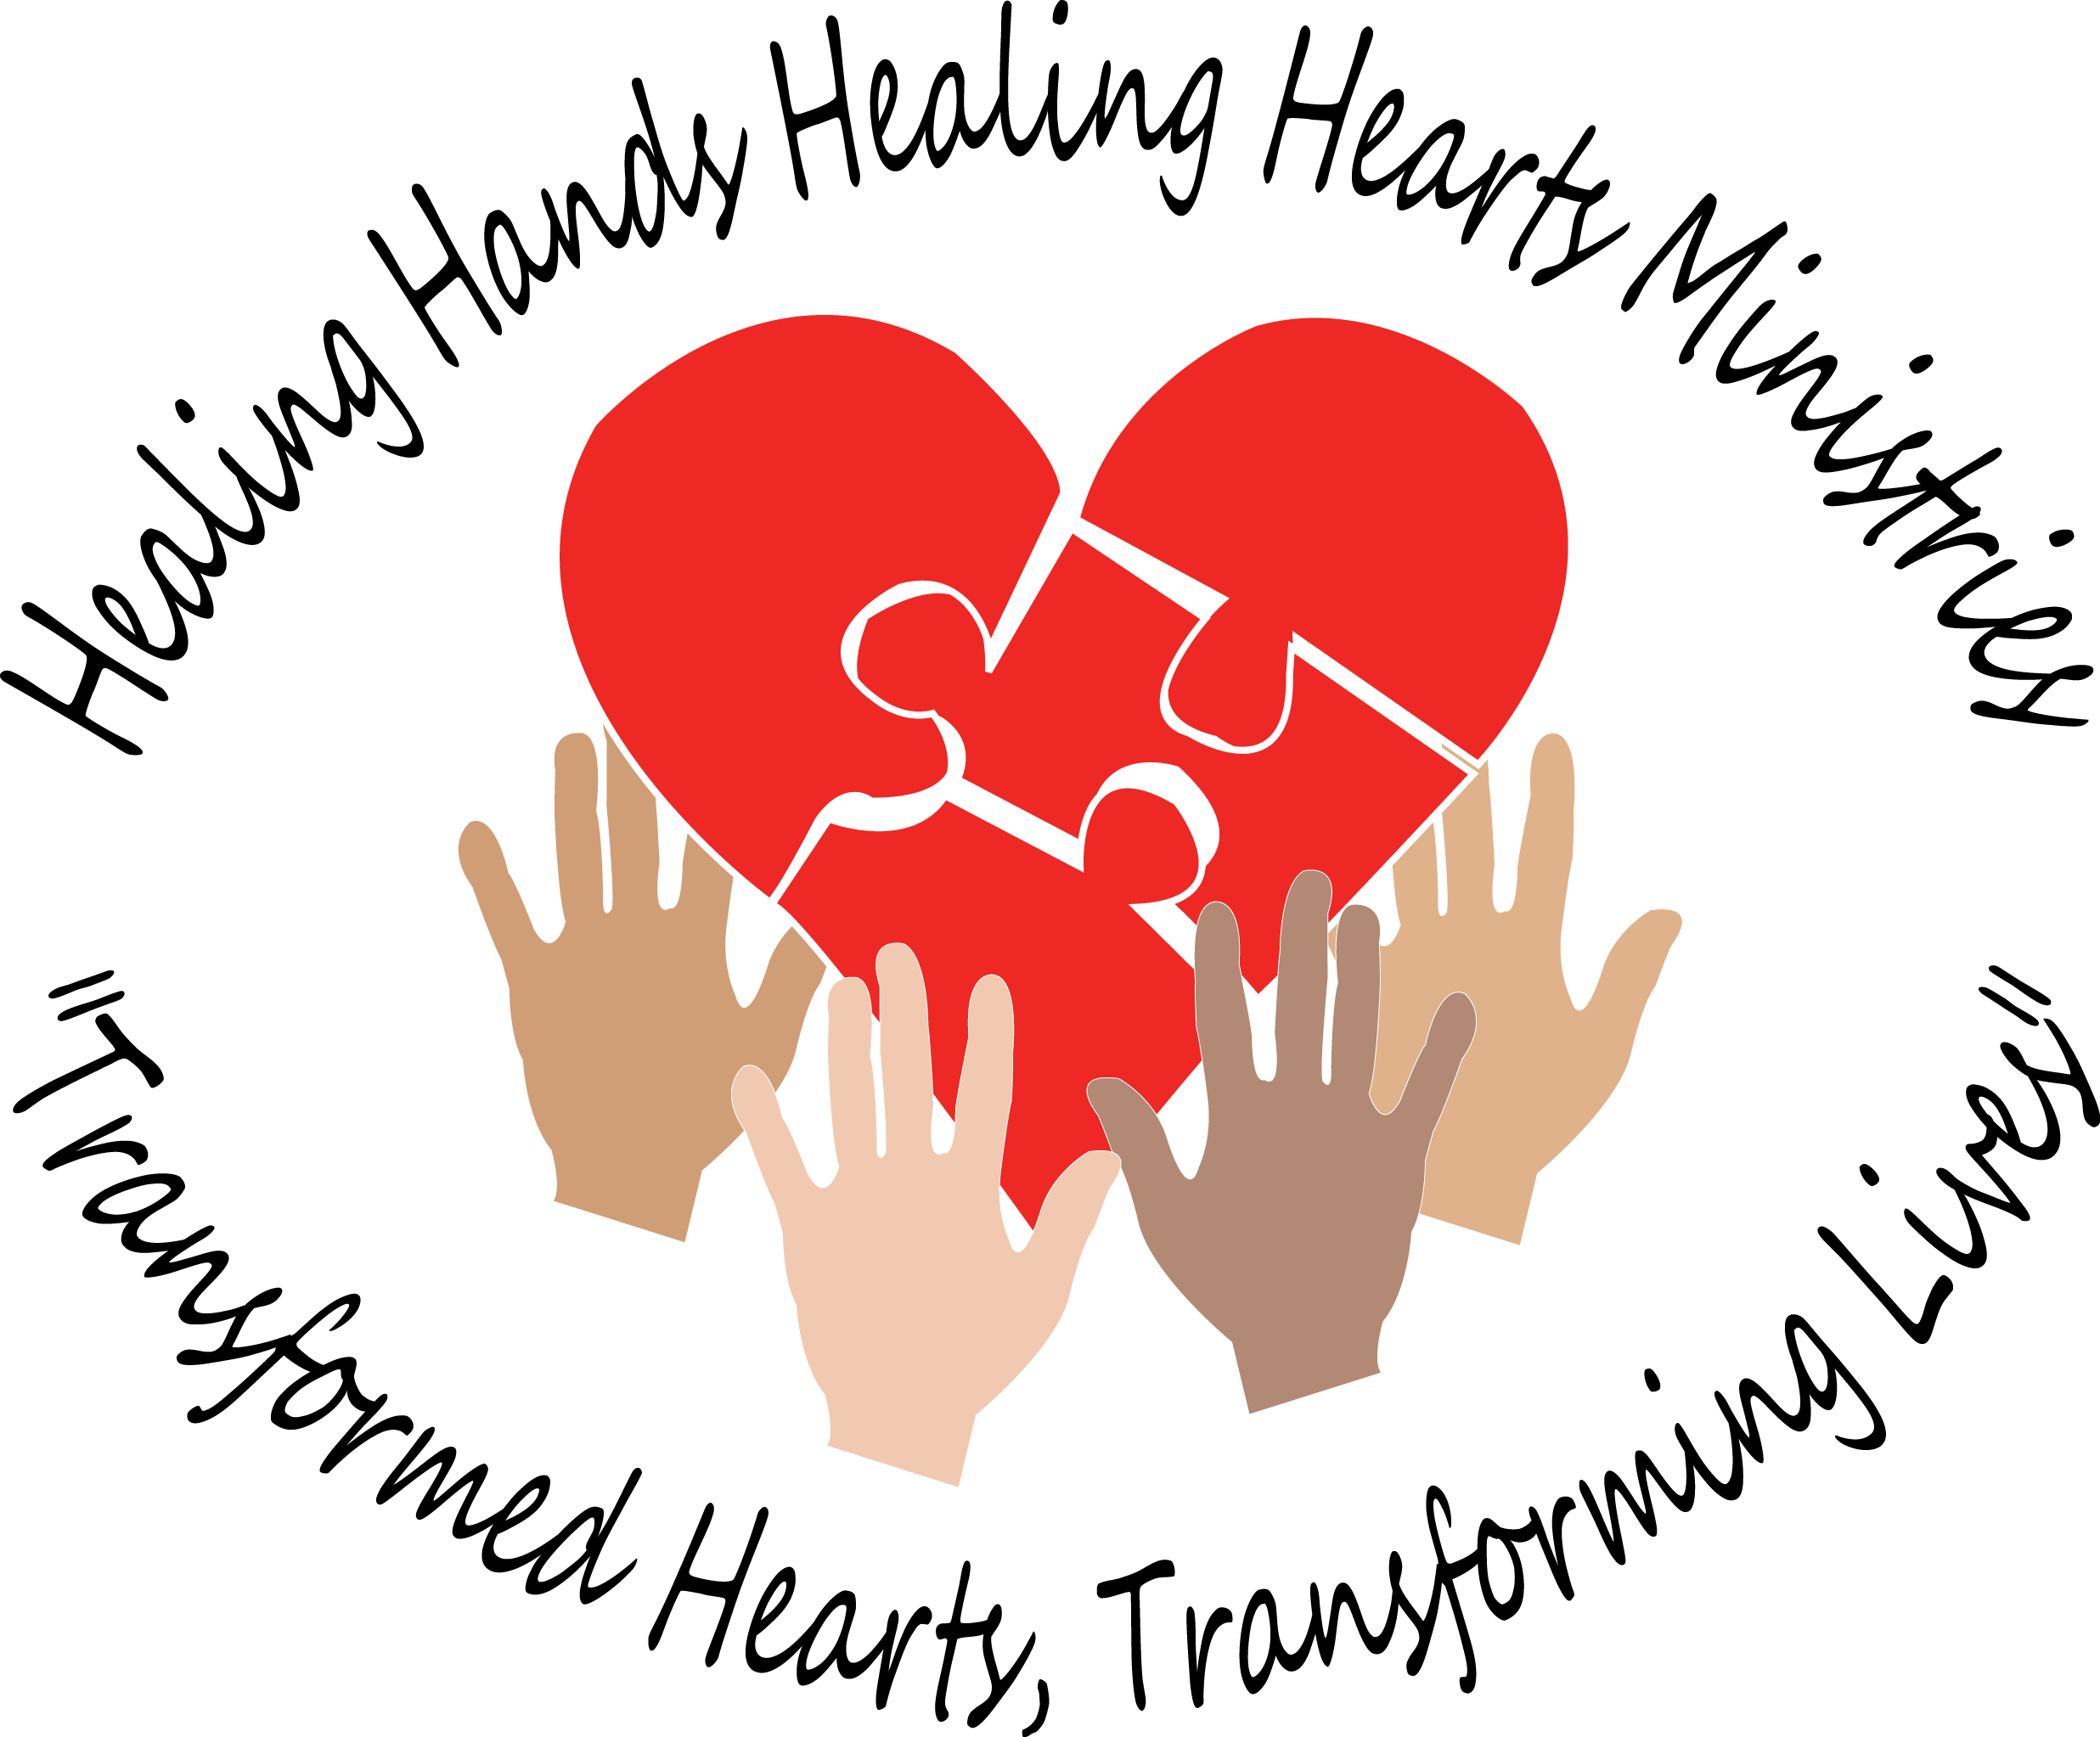 Healing Hands Healing Hearts Ministries is 501c3 nonprofit organization designed to be a beacon of light and refuge for individuals seeking inner healing and wholeness.